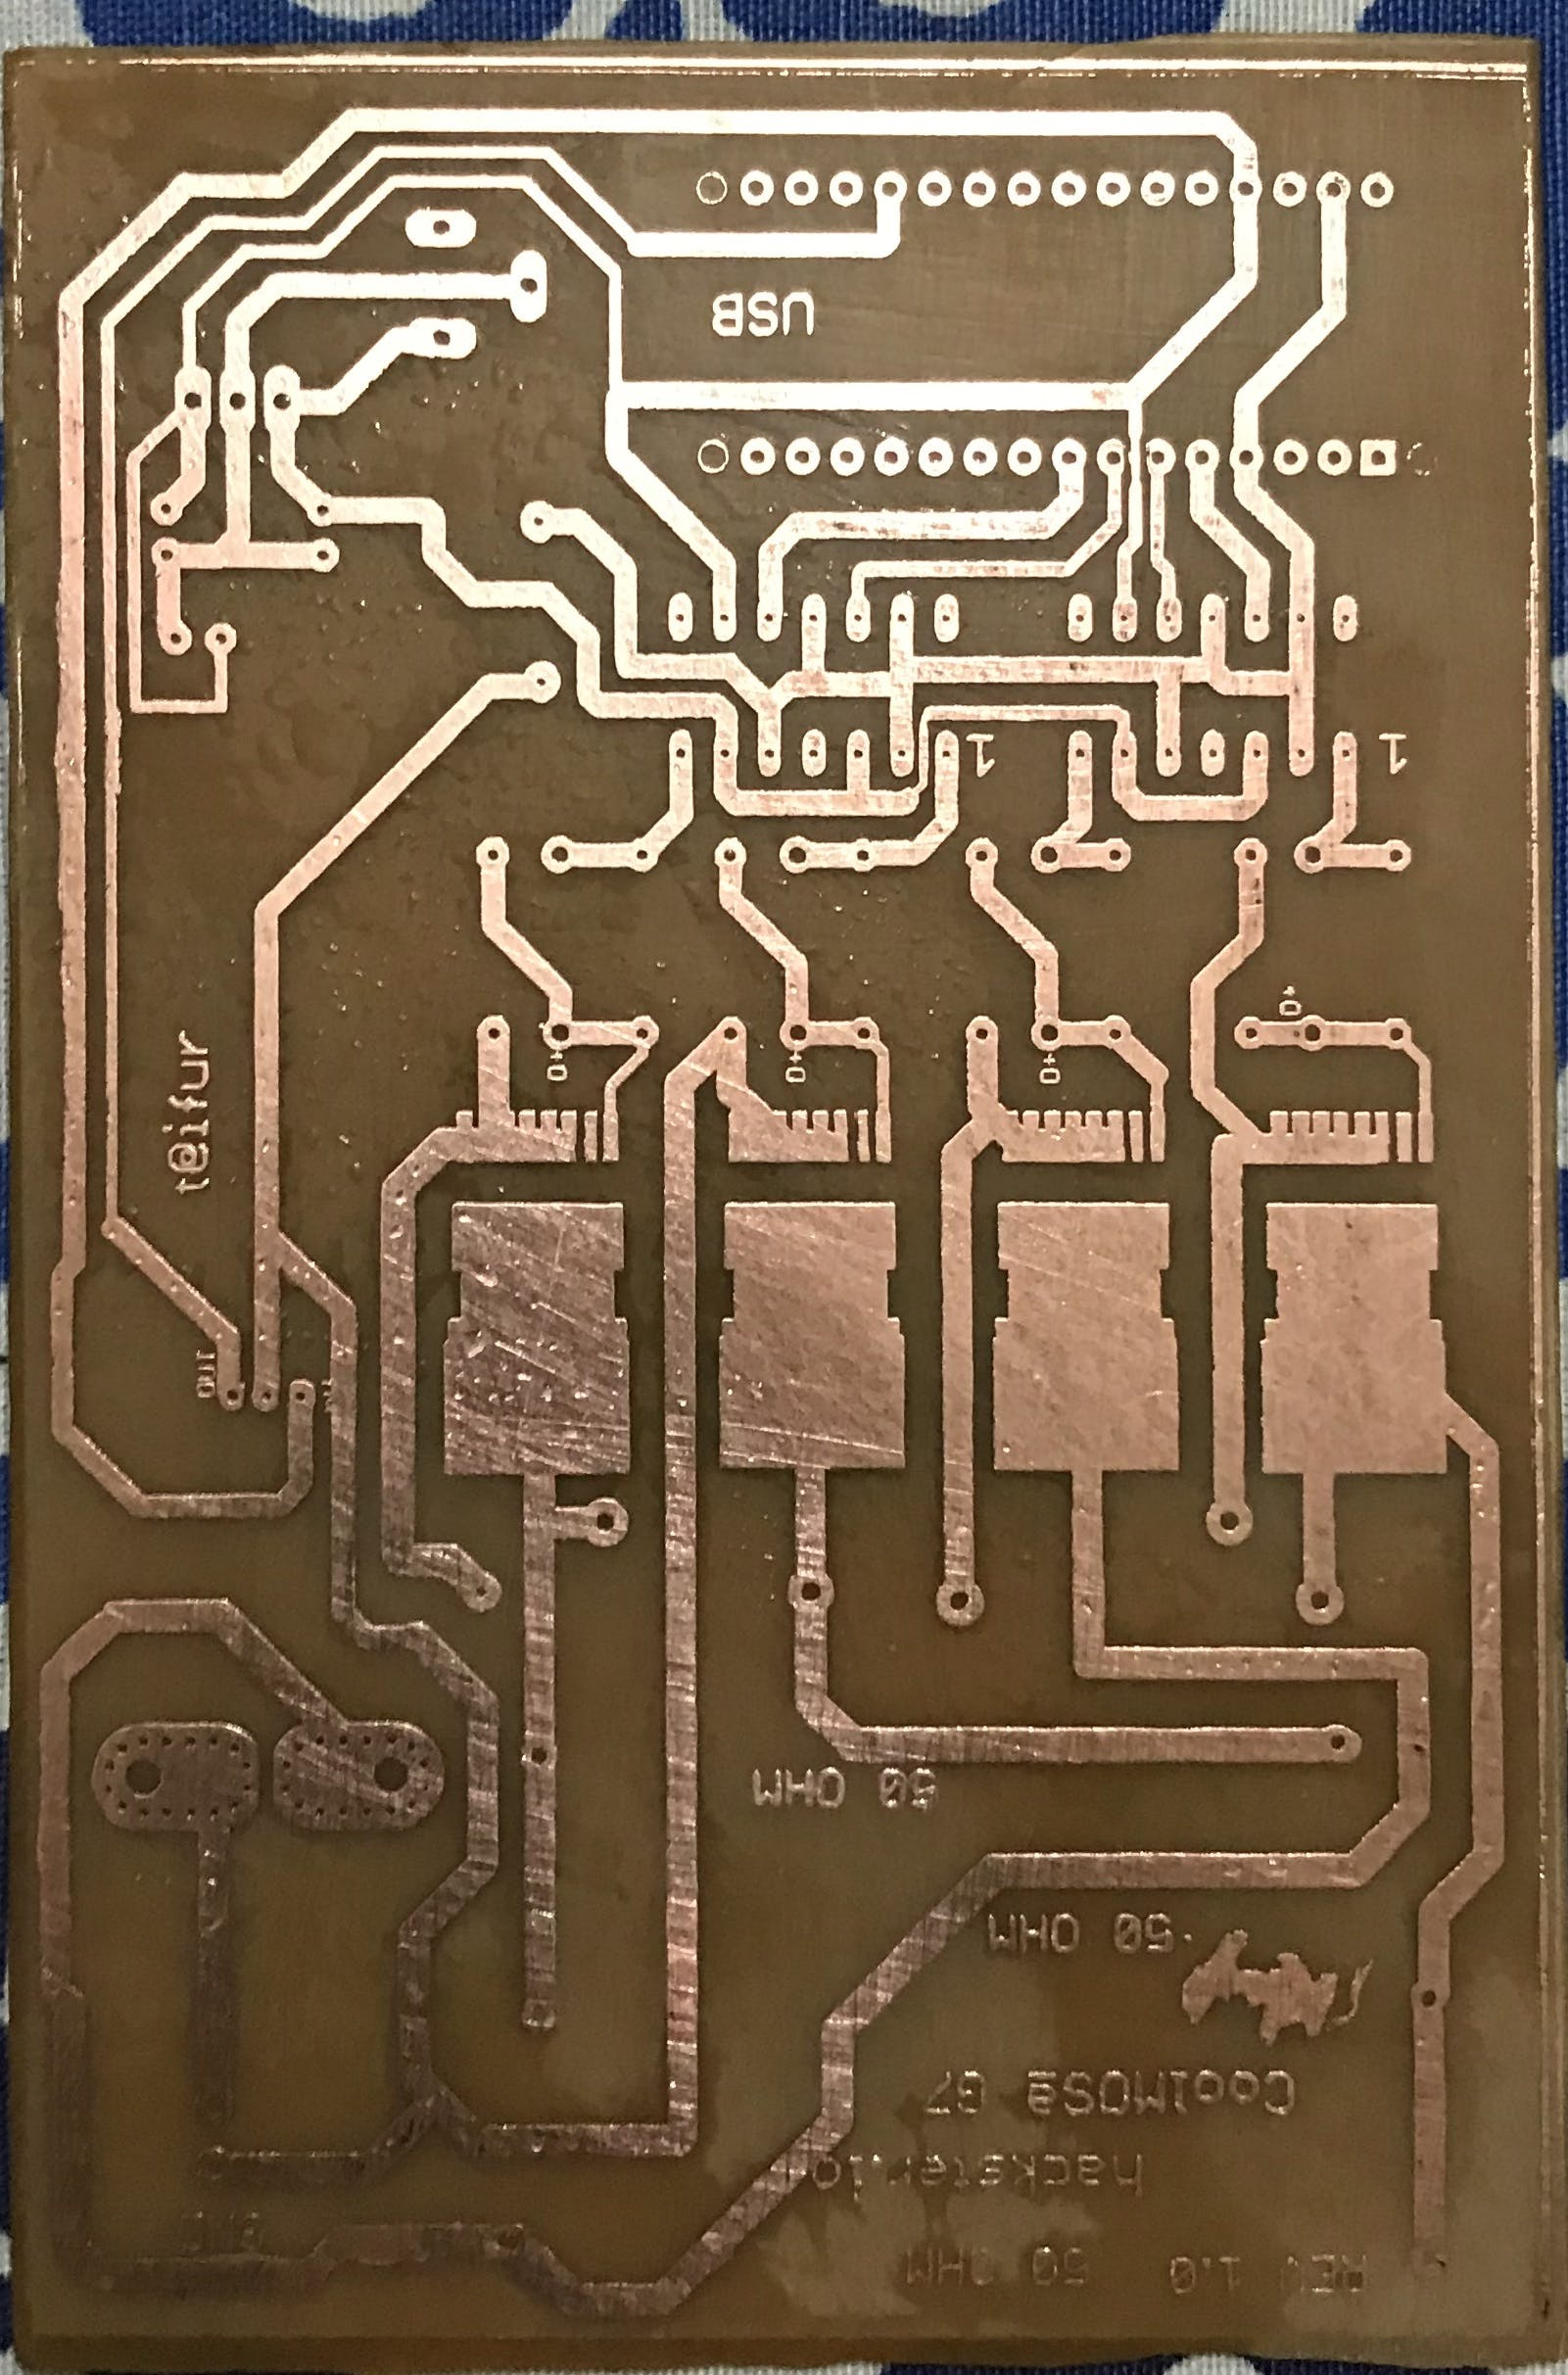 PCB for my starter